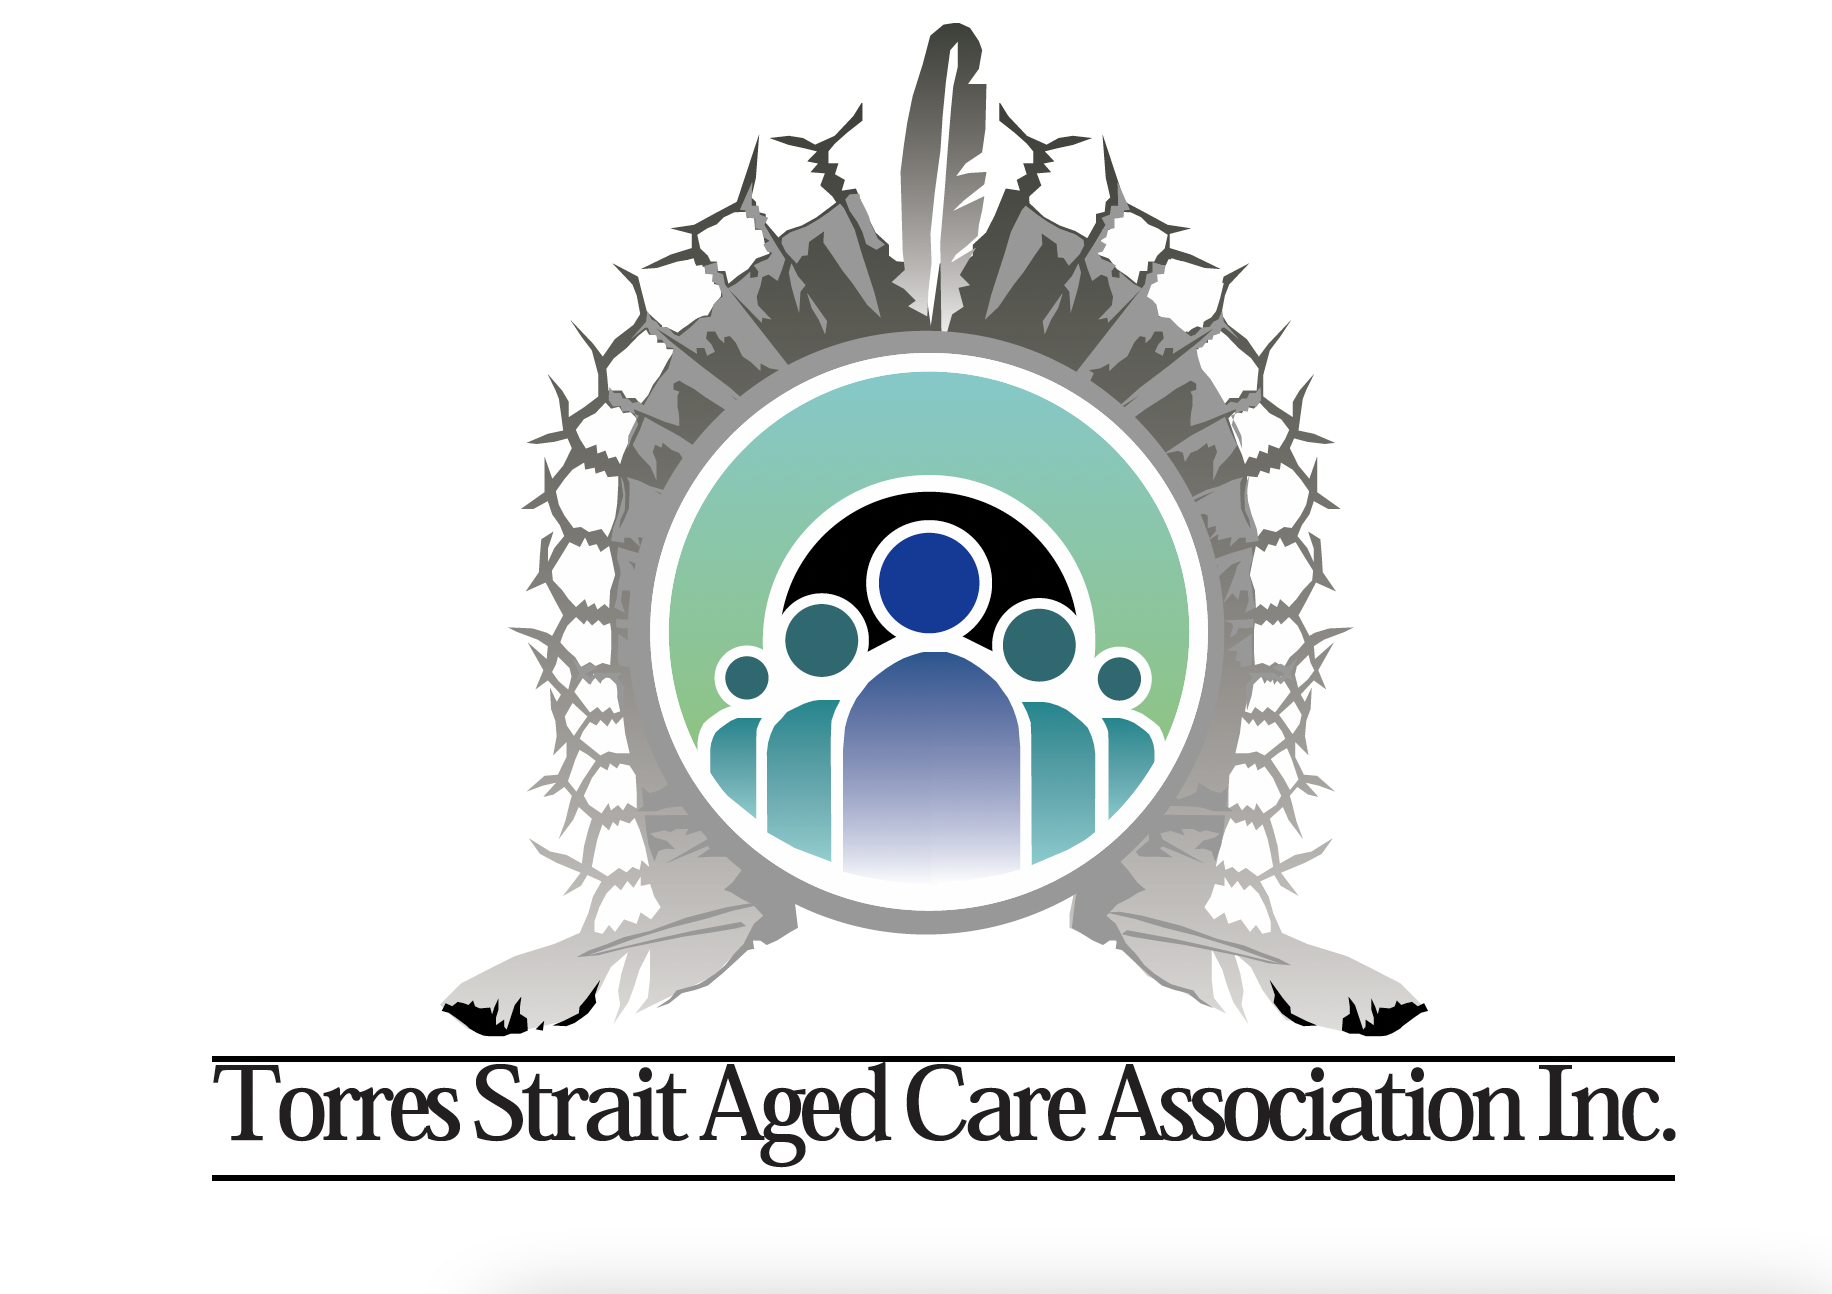 Feeling informed, connected, supported & heard: Advocacy for aged care in the Torres Strait